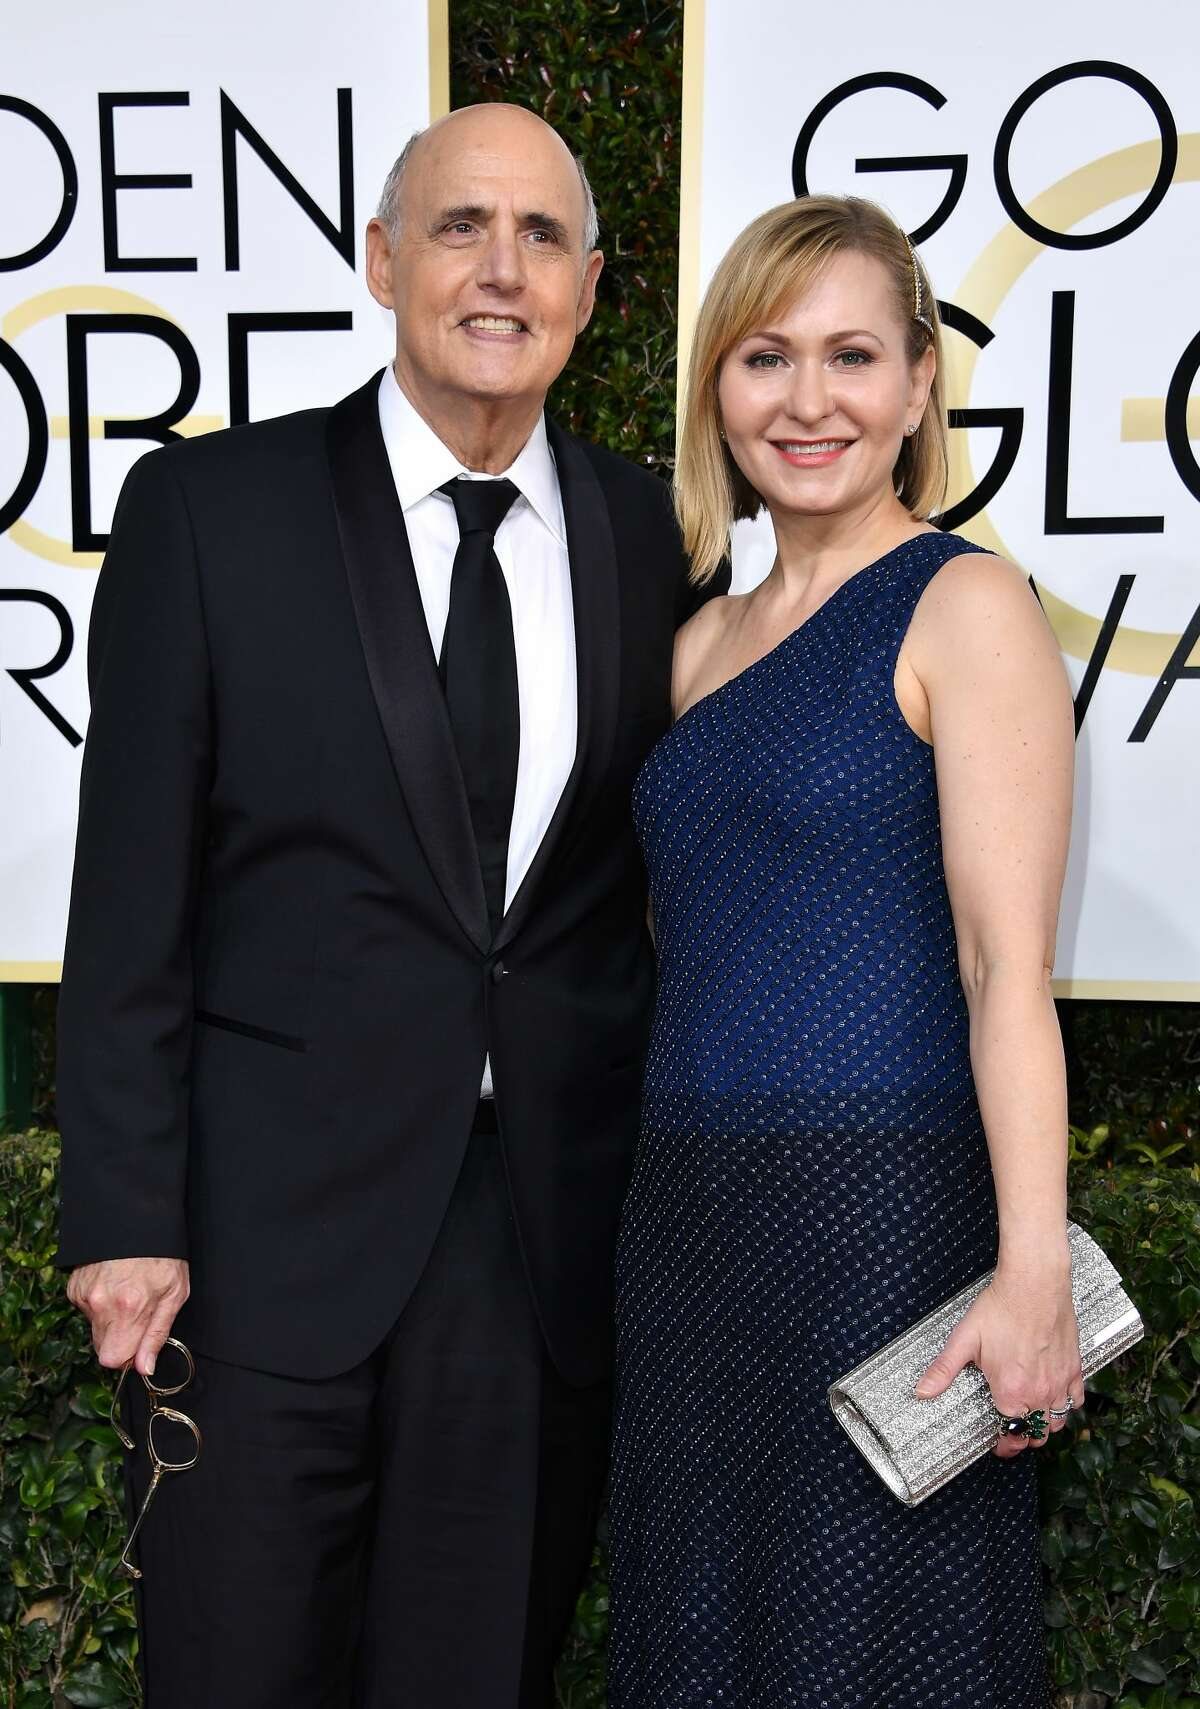 Actor Jeffrey Tambor (L) and Kasia Tambor attend the 74th Annual Golden Globe Awards at The Beverly Hilton Hotel on January 8, 2017 in Beverly Hills, California. Tambor has won two Emmys for his work on the show